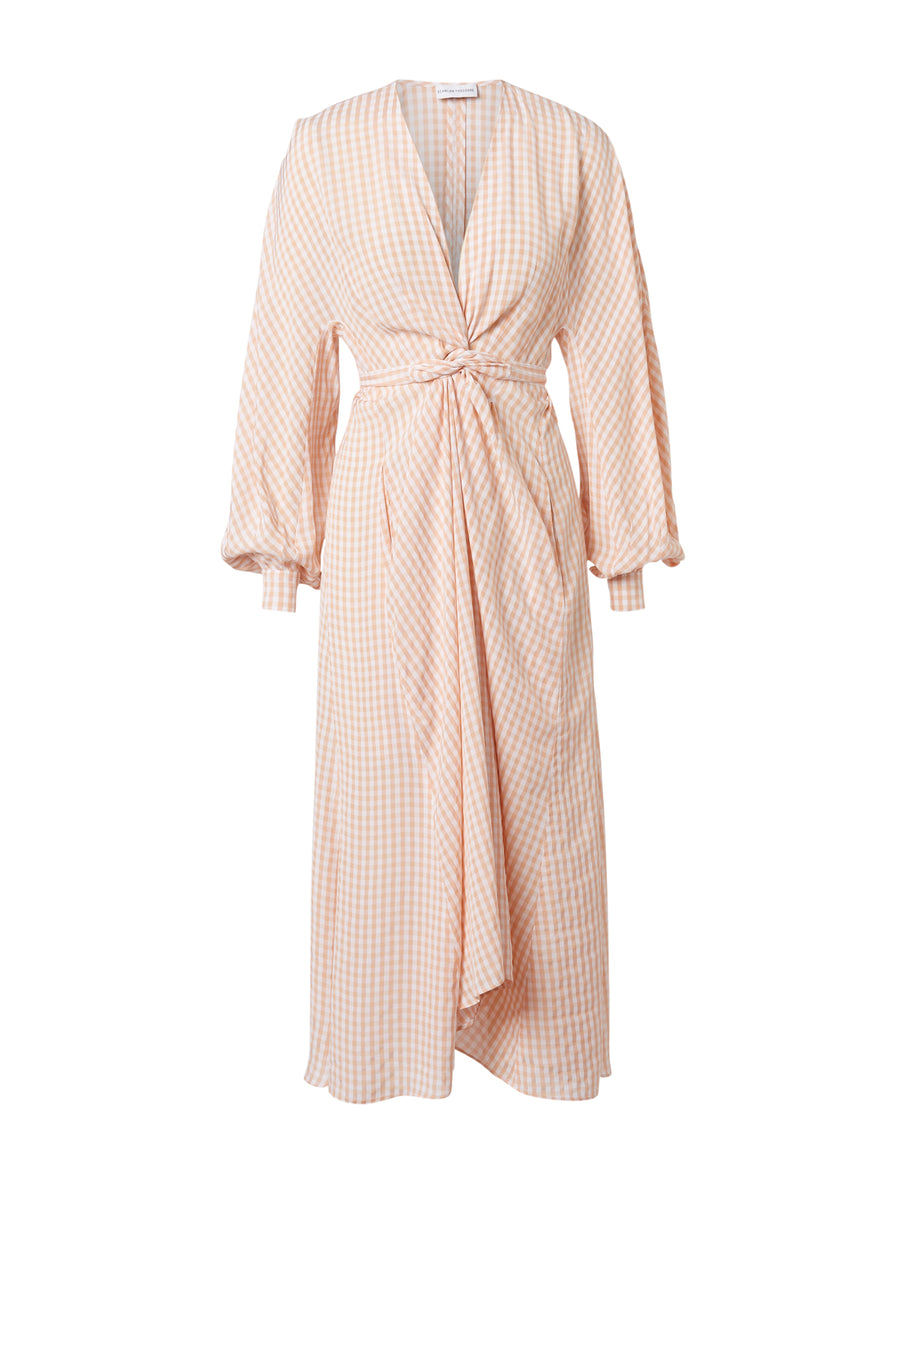 Gingham Wrap Front Dress is a loosely fitted, wrap around dress with billowing sleeves and hidden side pockets, belt included, color peach